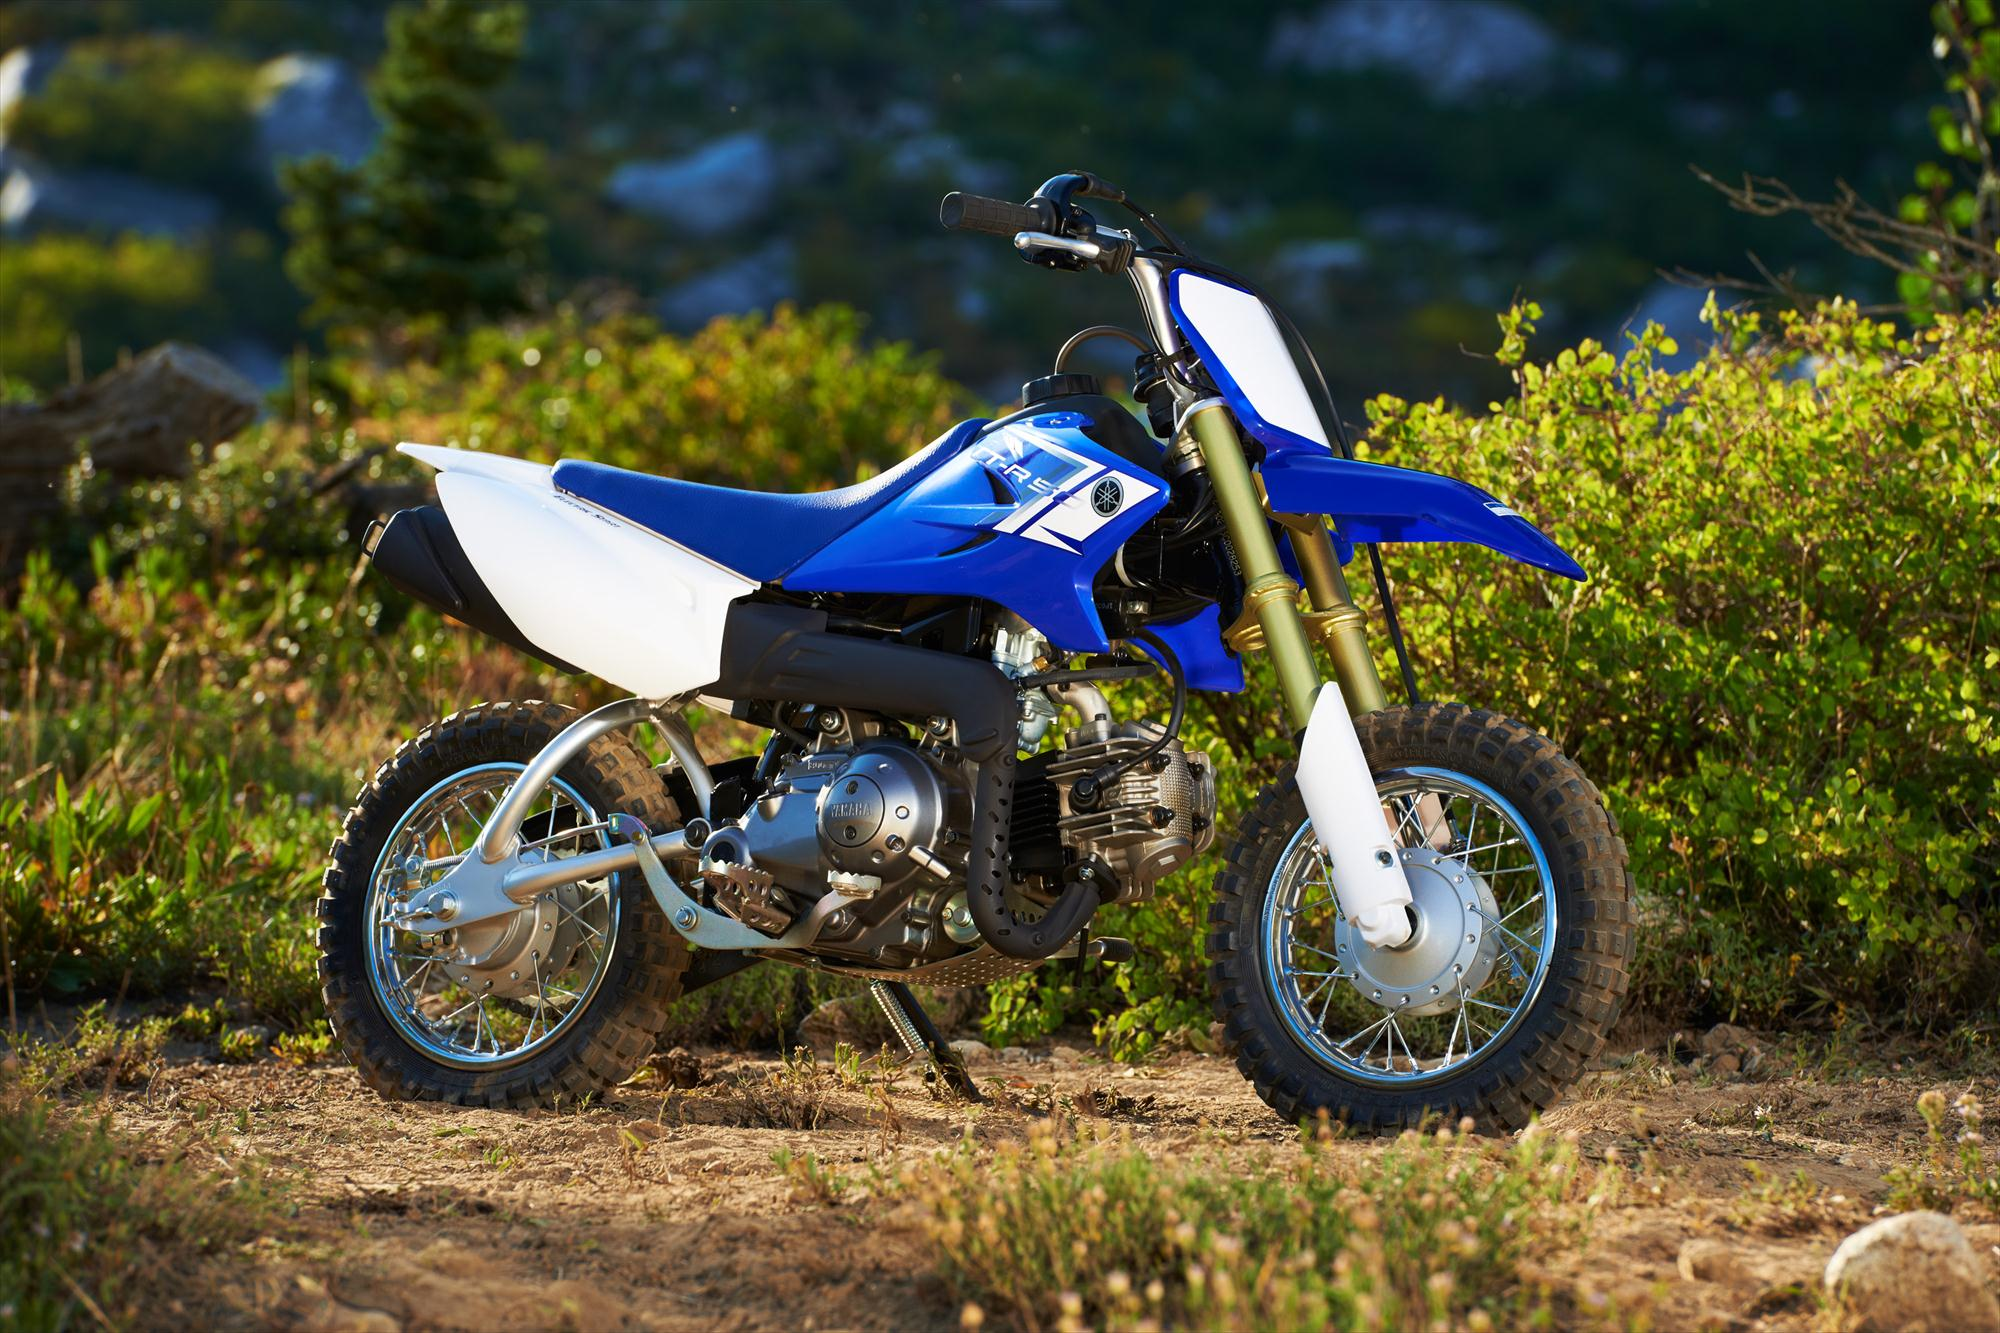 yamaha dirt bikes images - photo #46